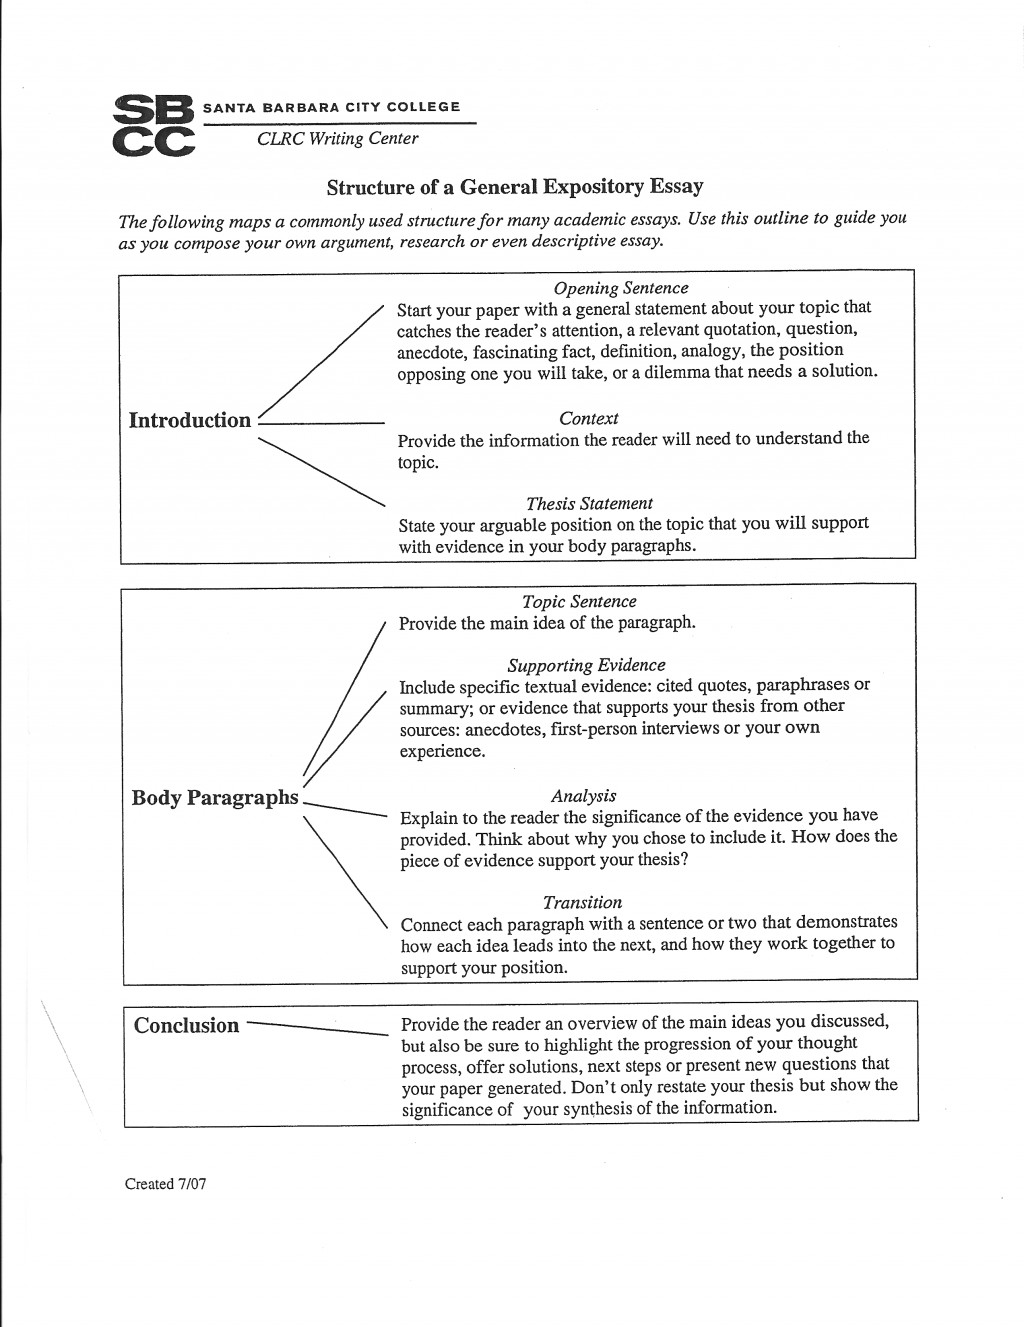 006 Informative Essay Dreaded Outline Template Pdf Topics For 5th Grade Rubric Fsa Large